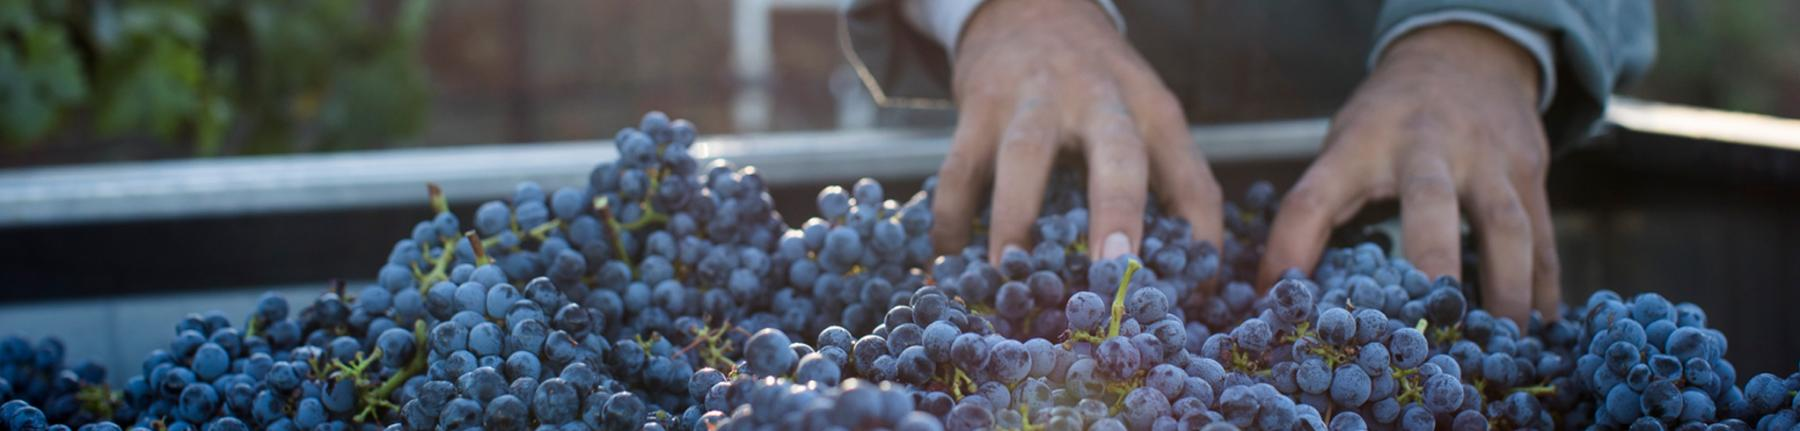 Hand-sorting grapes at harvest